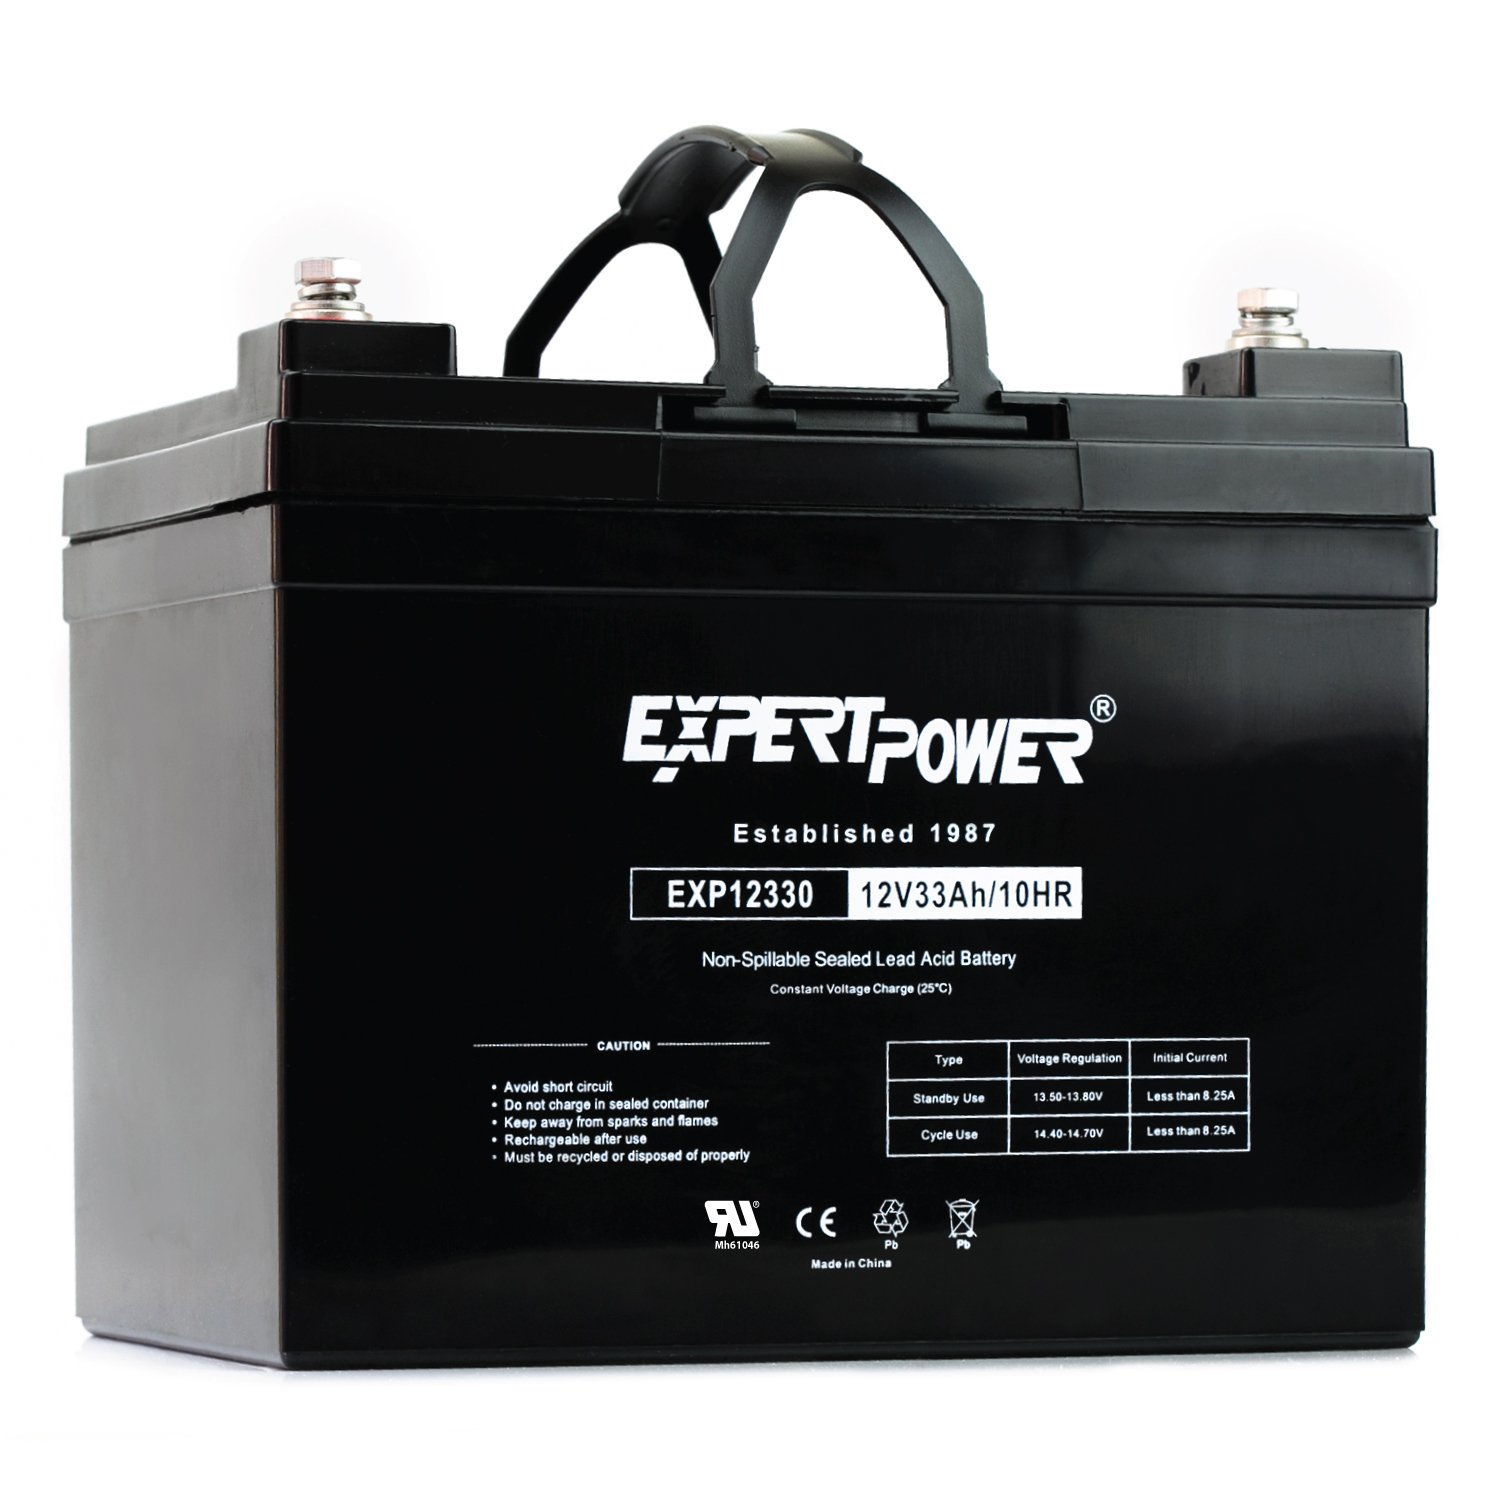 ExpertPower Rechargeable Battery EXP12330 Replaces